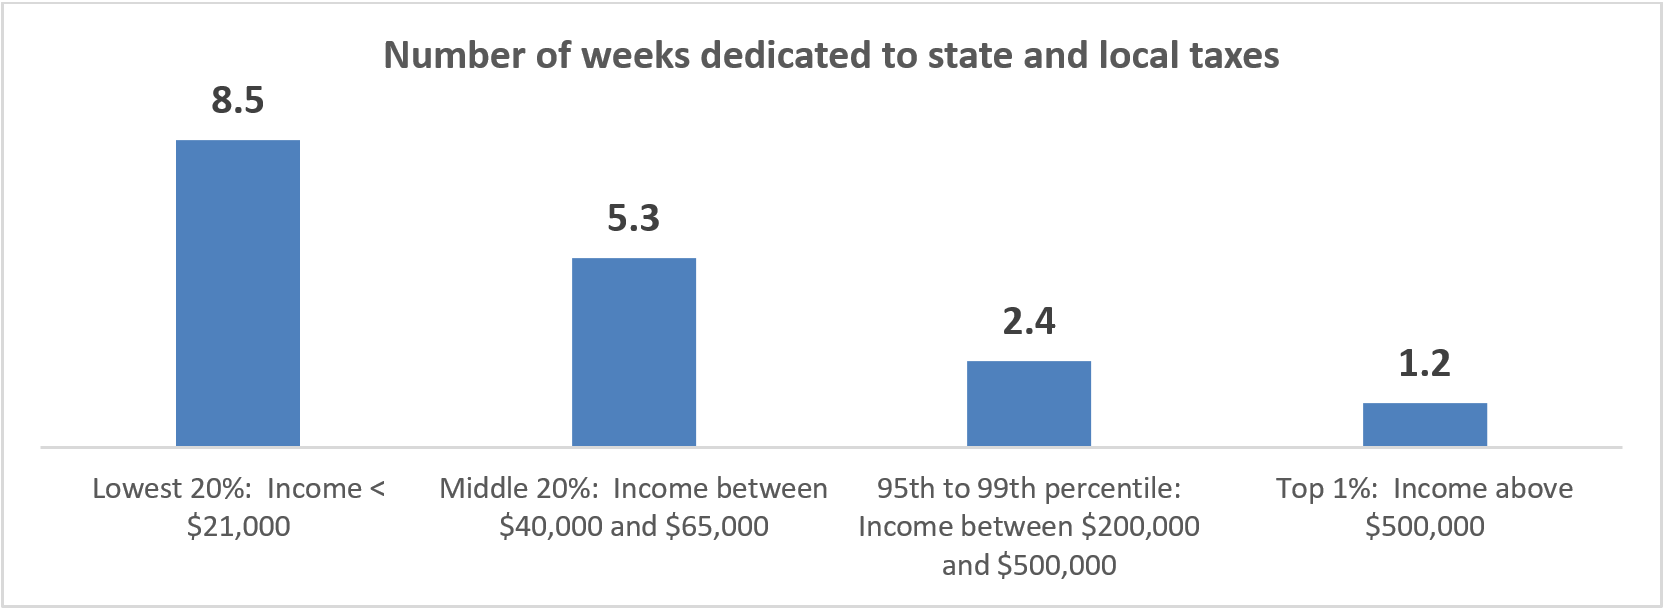 Number of weeks dedicated to state and local taxes